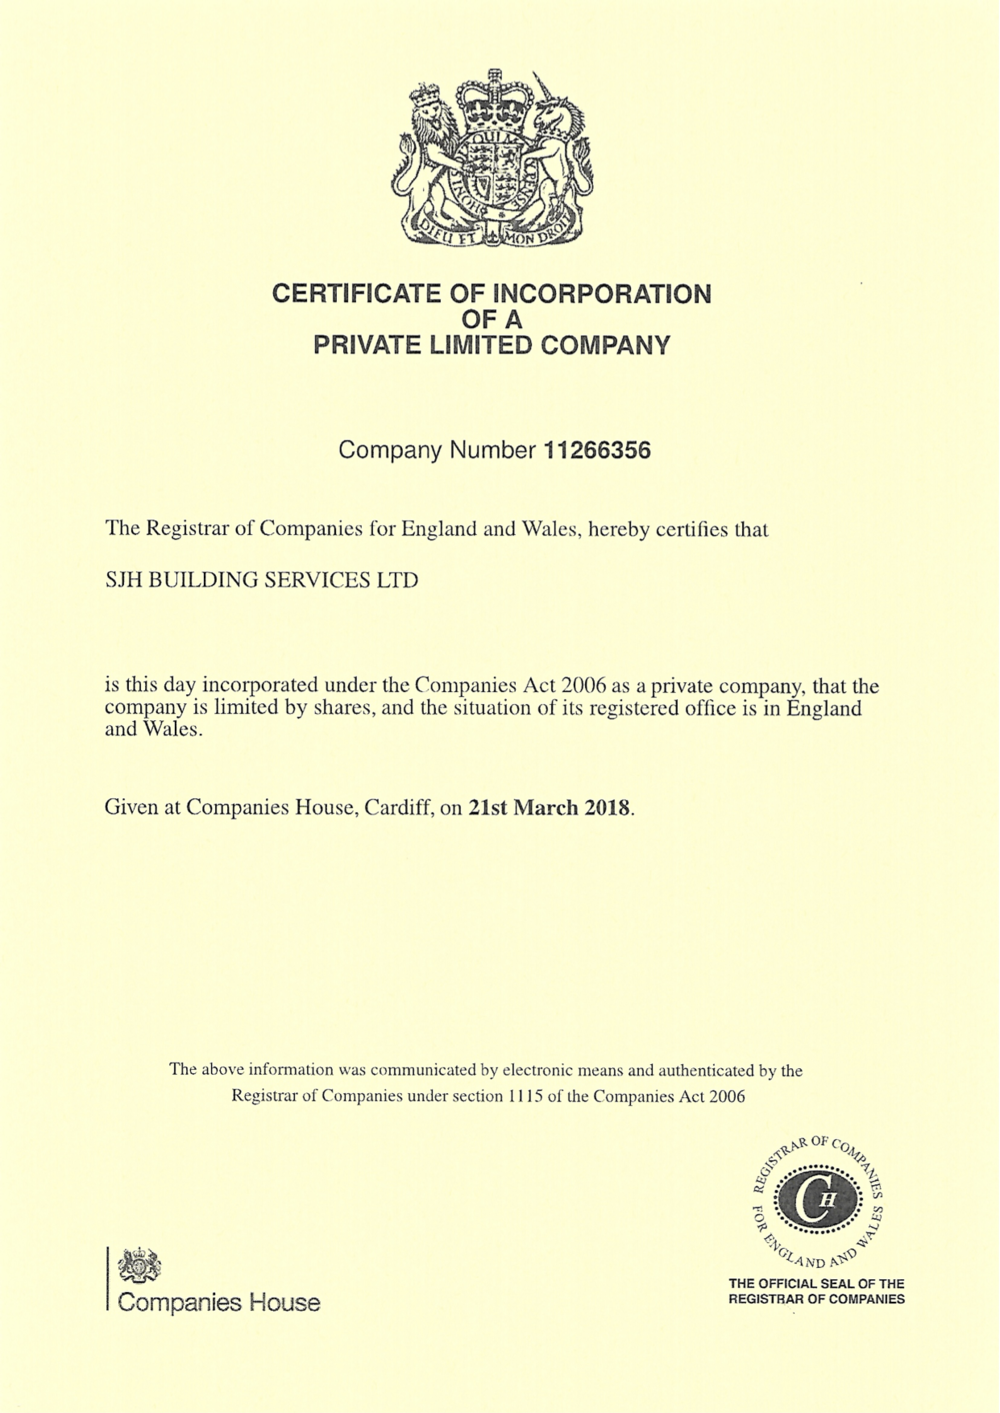 SJH Building Services Incorporation Certificate.png